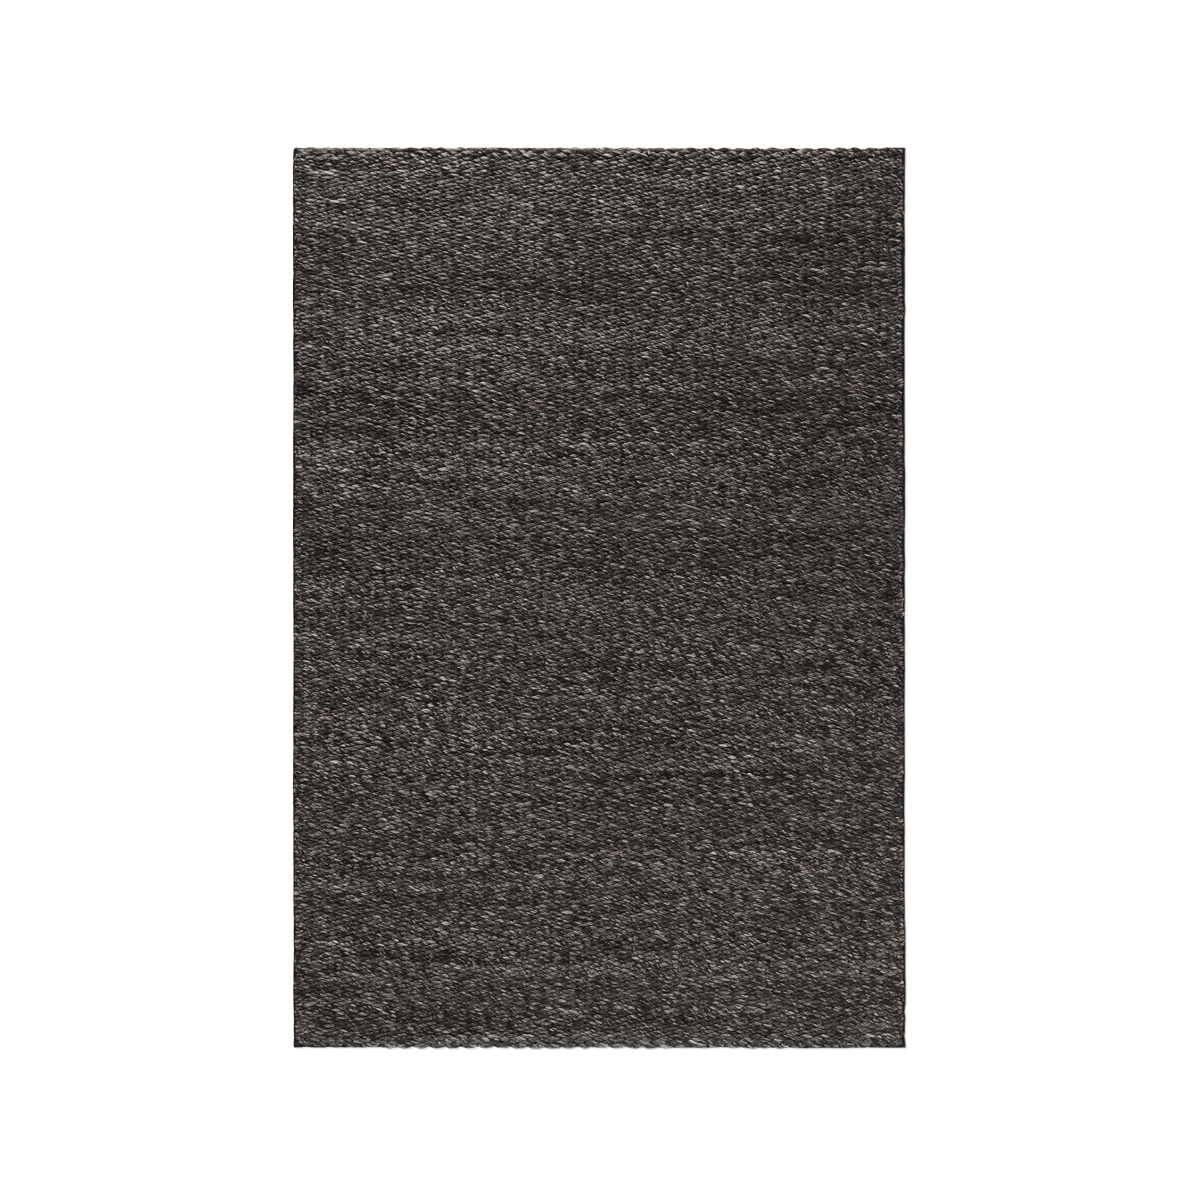 Product image of the chunky flatweave rug Dunes in the color Anthracite Mix. It has a thick, braided texture.